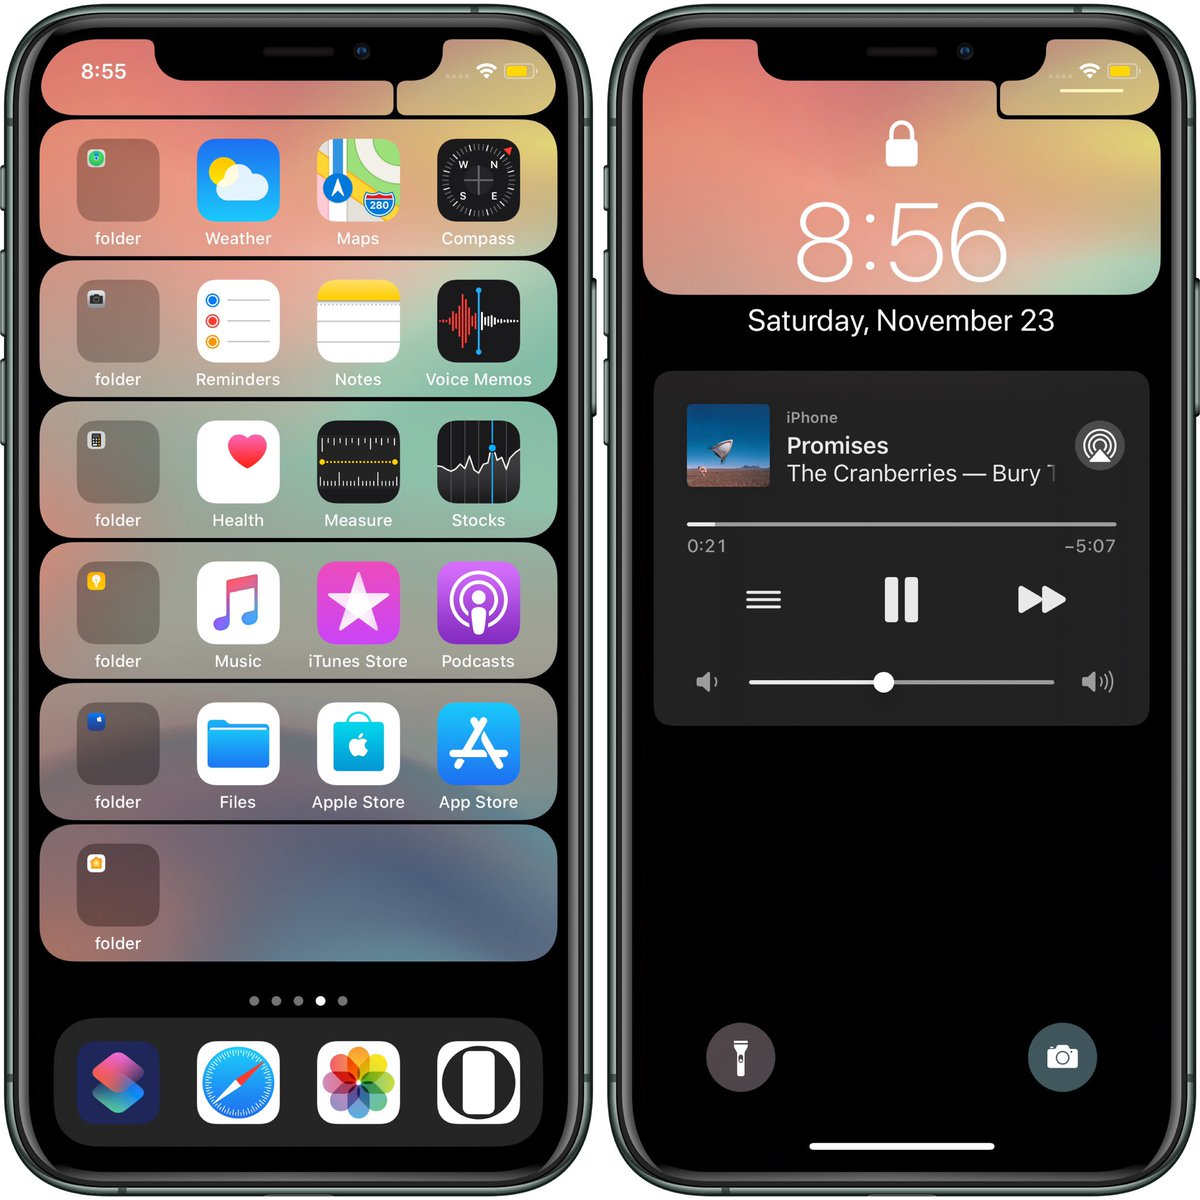 Hide Mysterious Iphone Wallpaper 不思議なiphone壁紙 ベゼルの棚壁をios 13 2に対応させました The Bezel Shelf Wallpaper Is Now Available On Ios 13 2 T Co Qnyalqu1jy